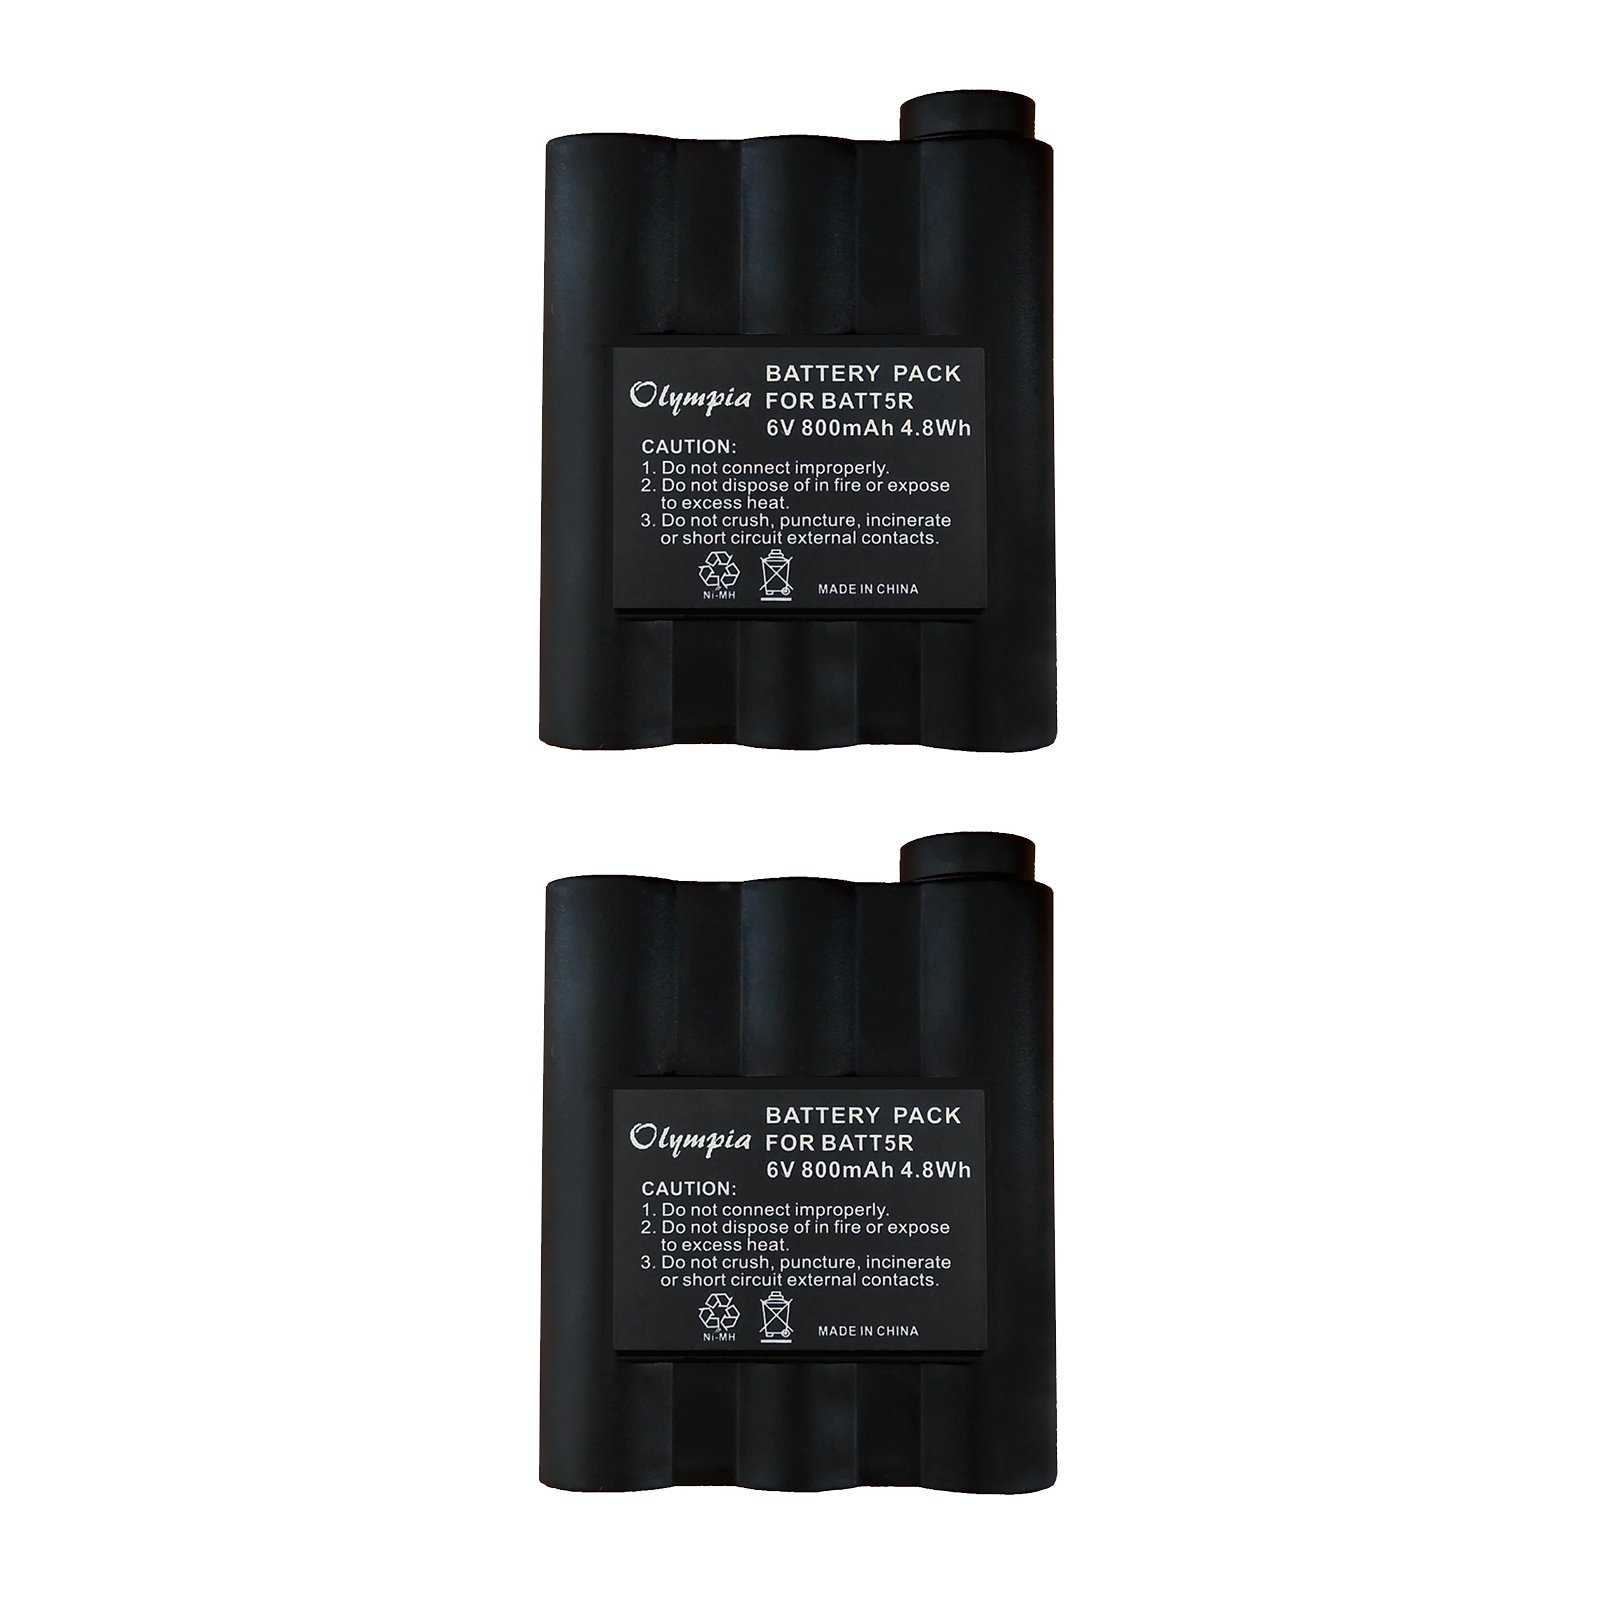 2 Pack - Midland GXT710 Battery - Replacement for Midland BATT-5R Two-Way Radio Battery -Compatible with Midland GXT710, GXT-300, GXT-325, GXT-400, GXT-444, GXT-450, GXT-500, GXT-550, GXT-555, GXT-600